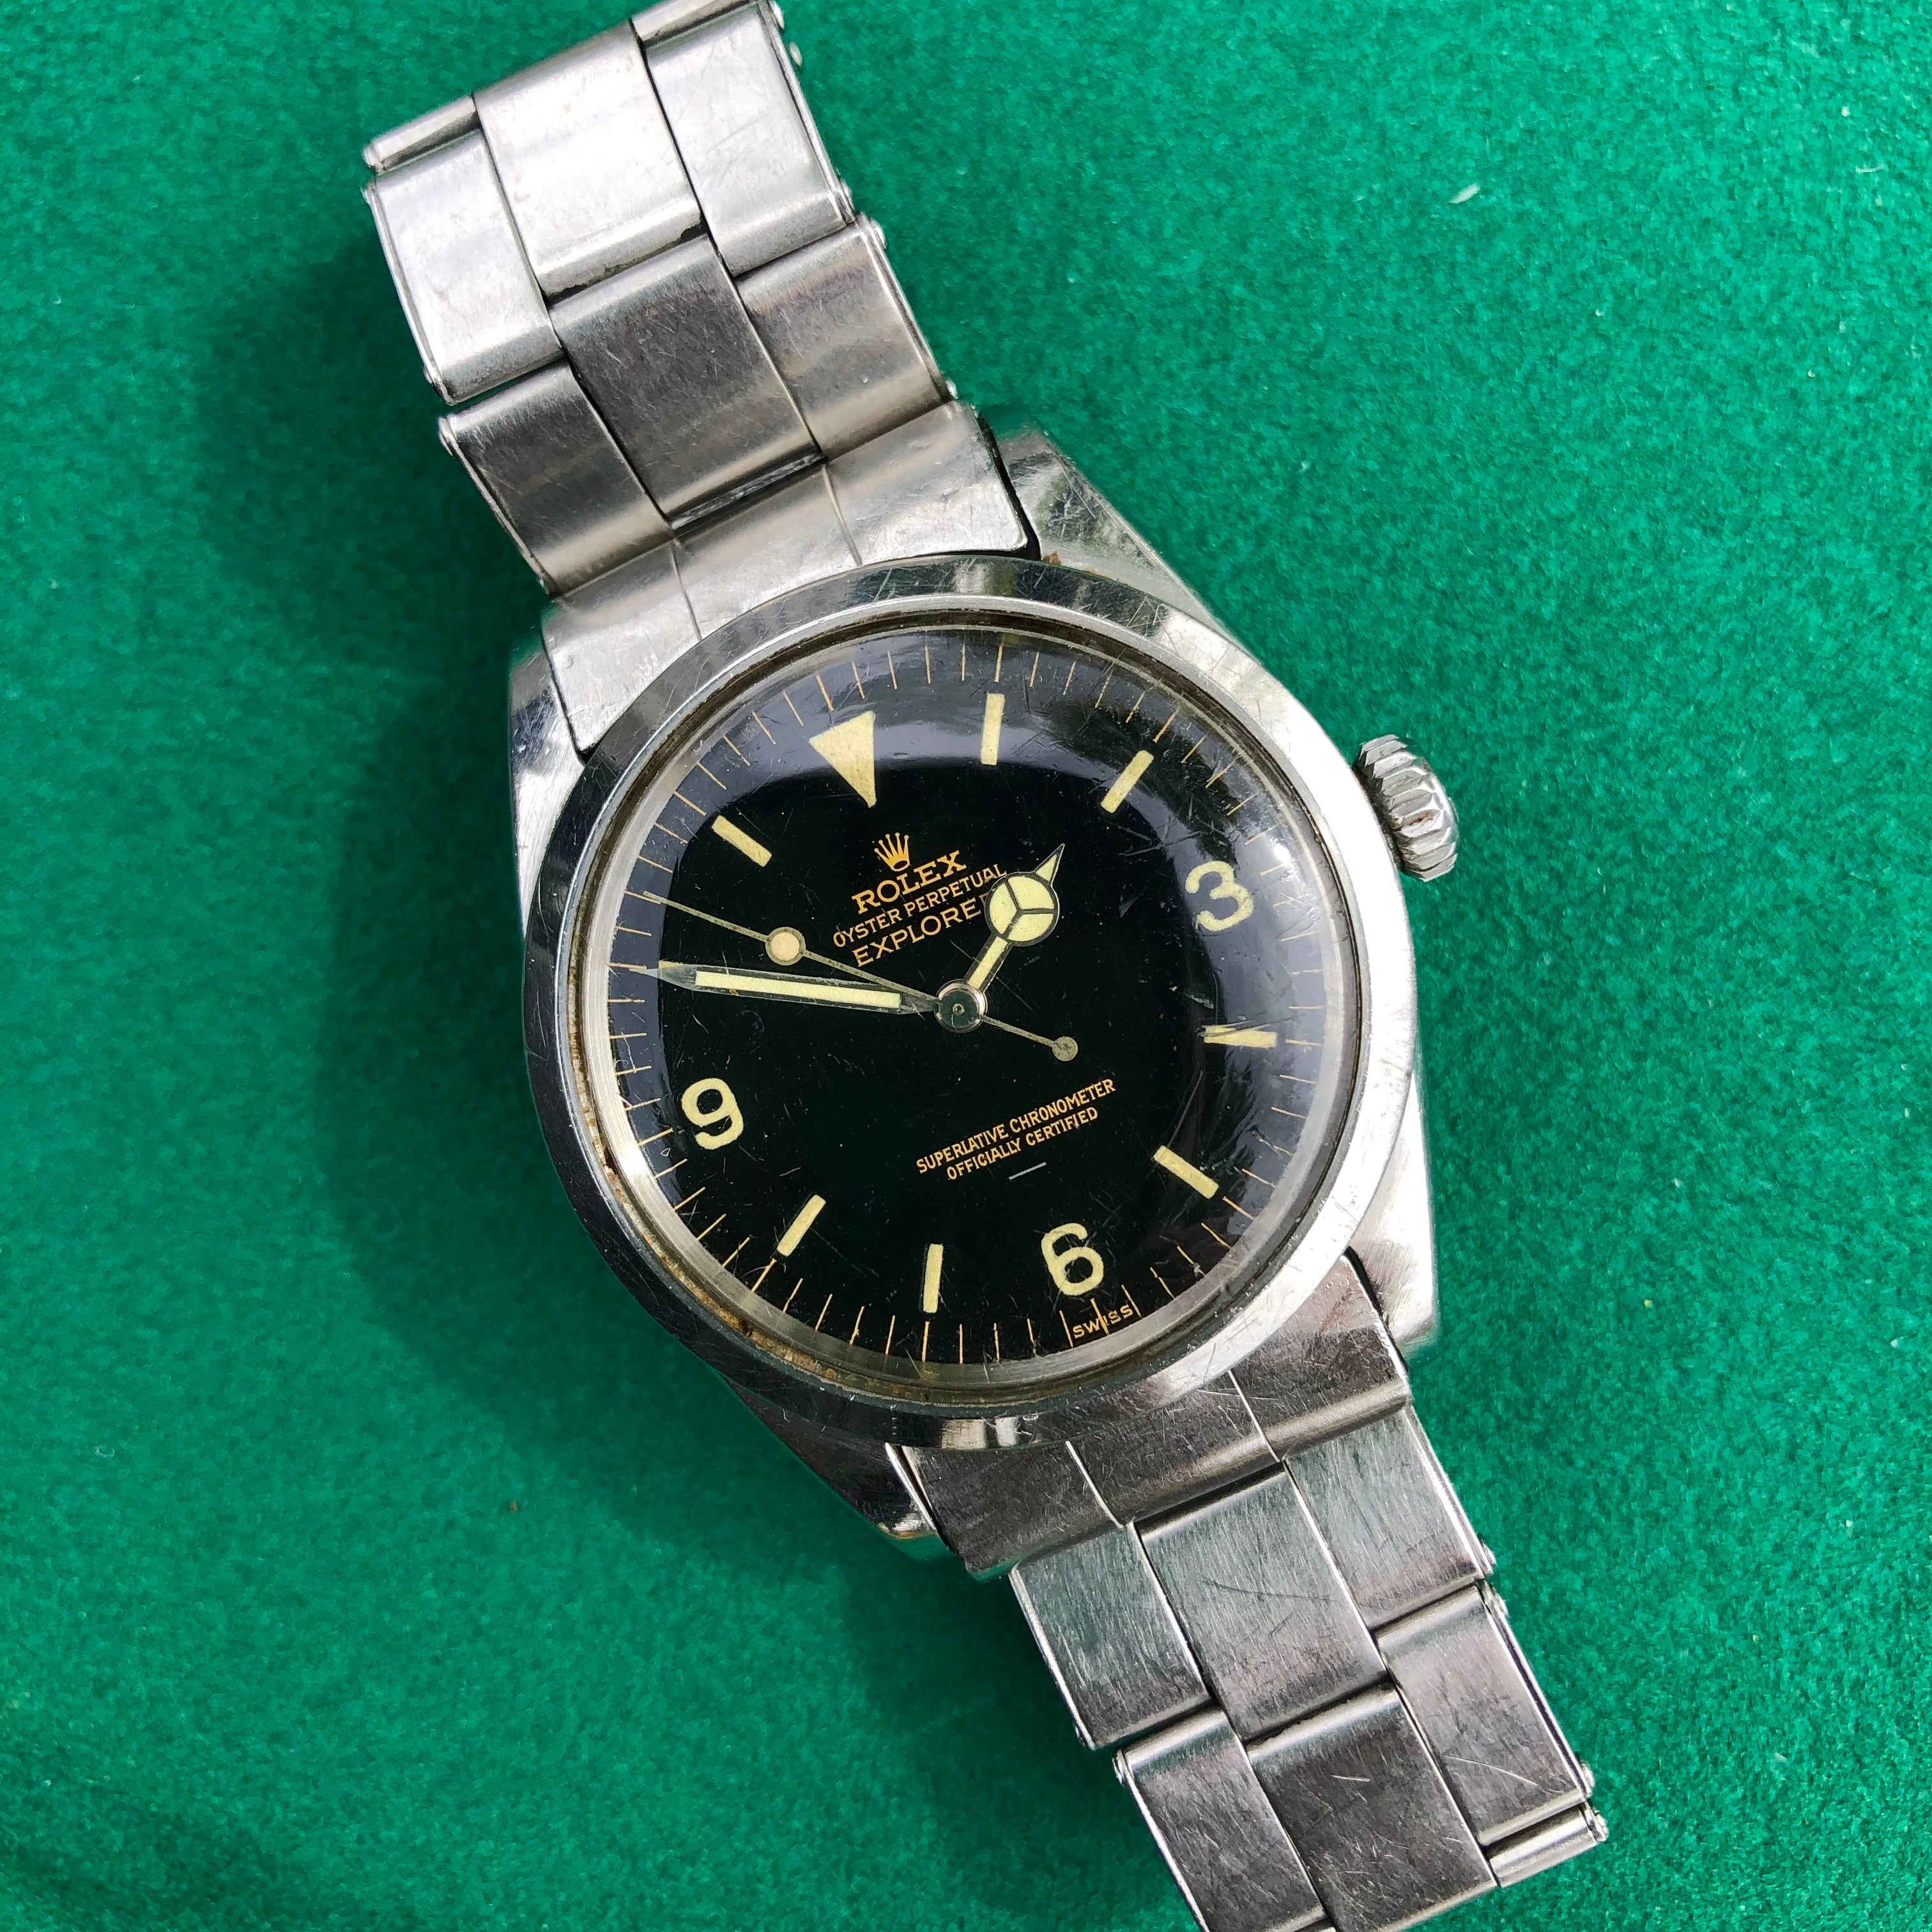 Vintage Rolex Explorer 1016 Gilt Underline Glossy Oyster Perpetual Wristwatch Circa 1963 - Hashtag Watch Company